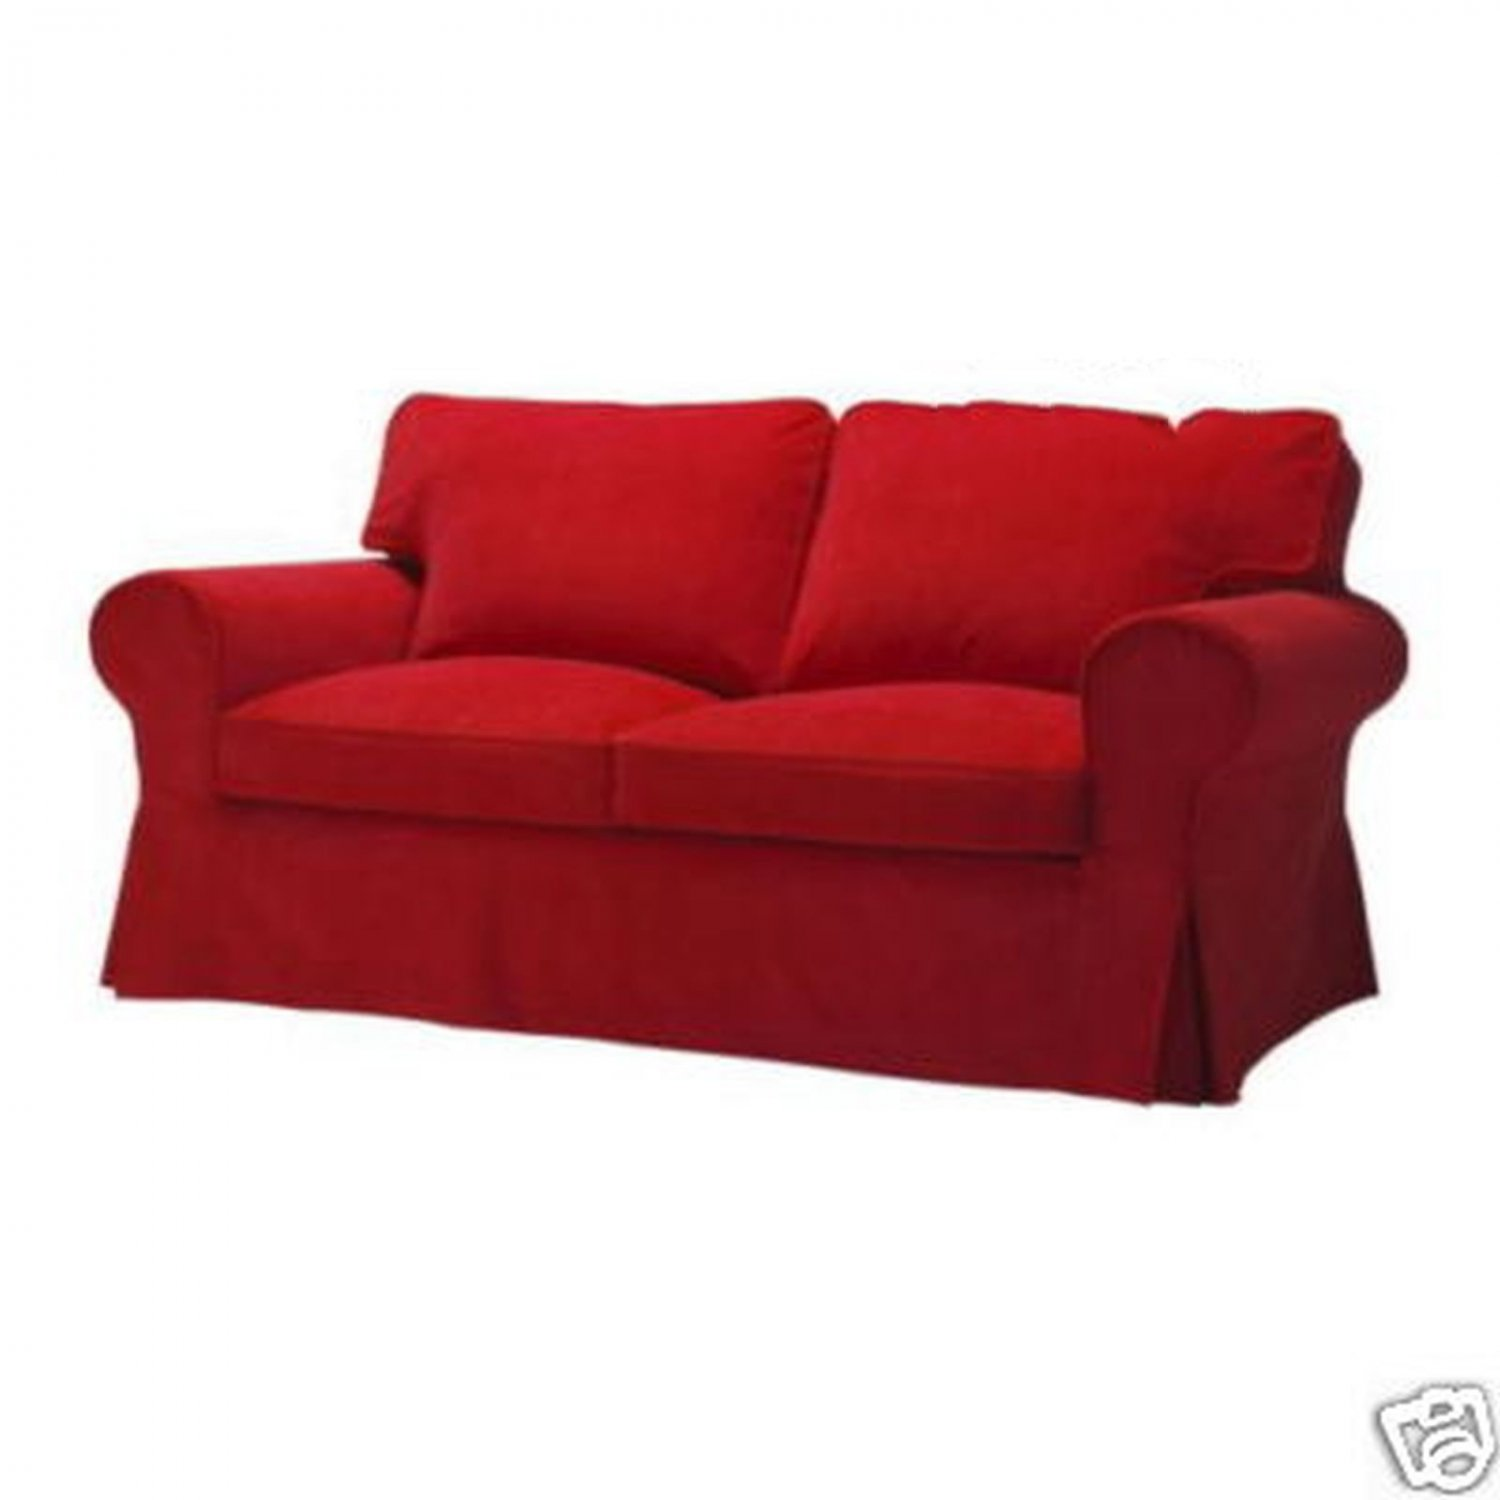 Ikea ektorp 2 seat loveseat sofa slipcover cover leaby red corduroy xmas limited edition last one Loveseat slipcover